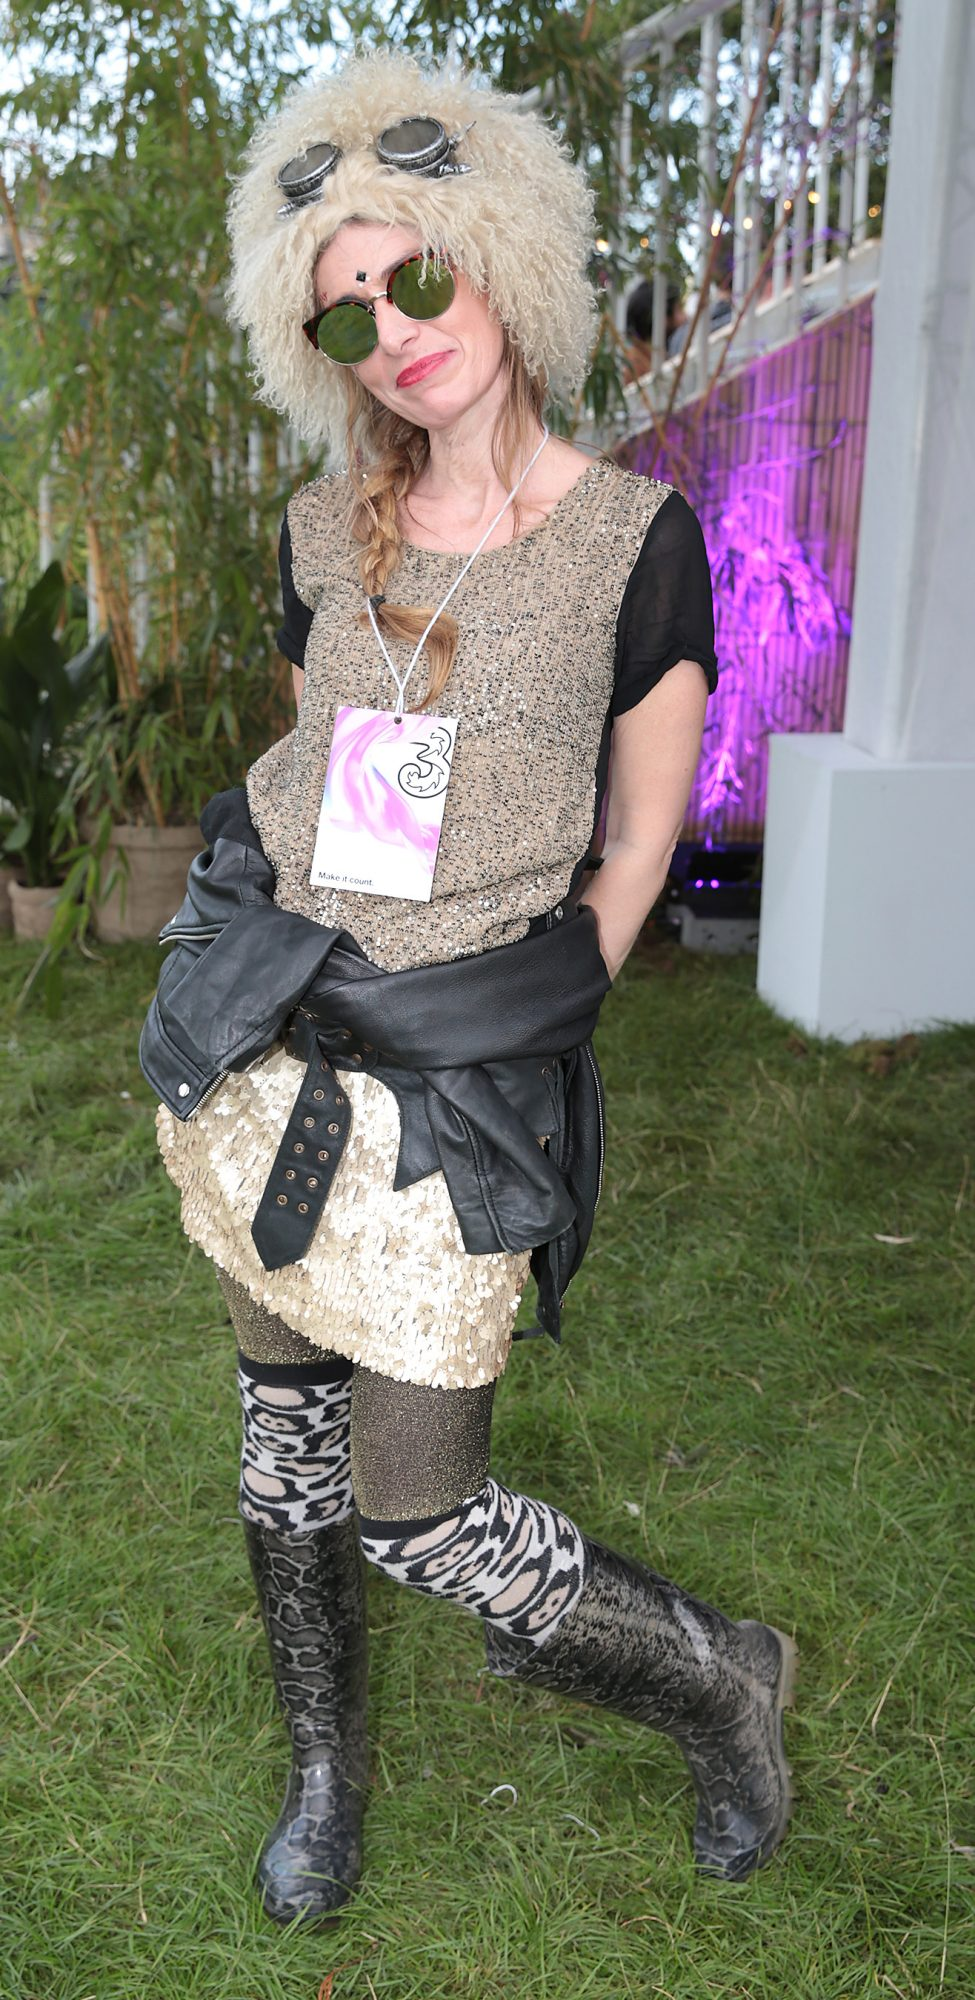 Sinead Morgan, from Dublin, at Three's Charge & Chill at Electric Picnic at Stradbally, Co. Laois. Picture: Brian McEvoyNo Repro fee for one use